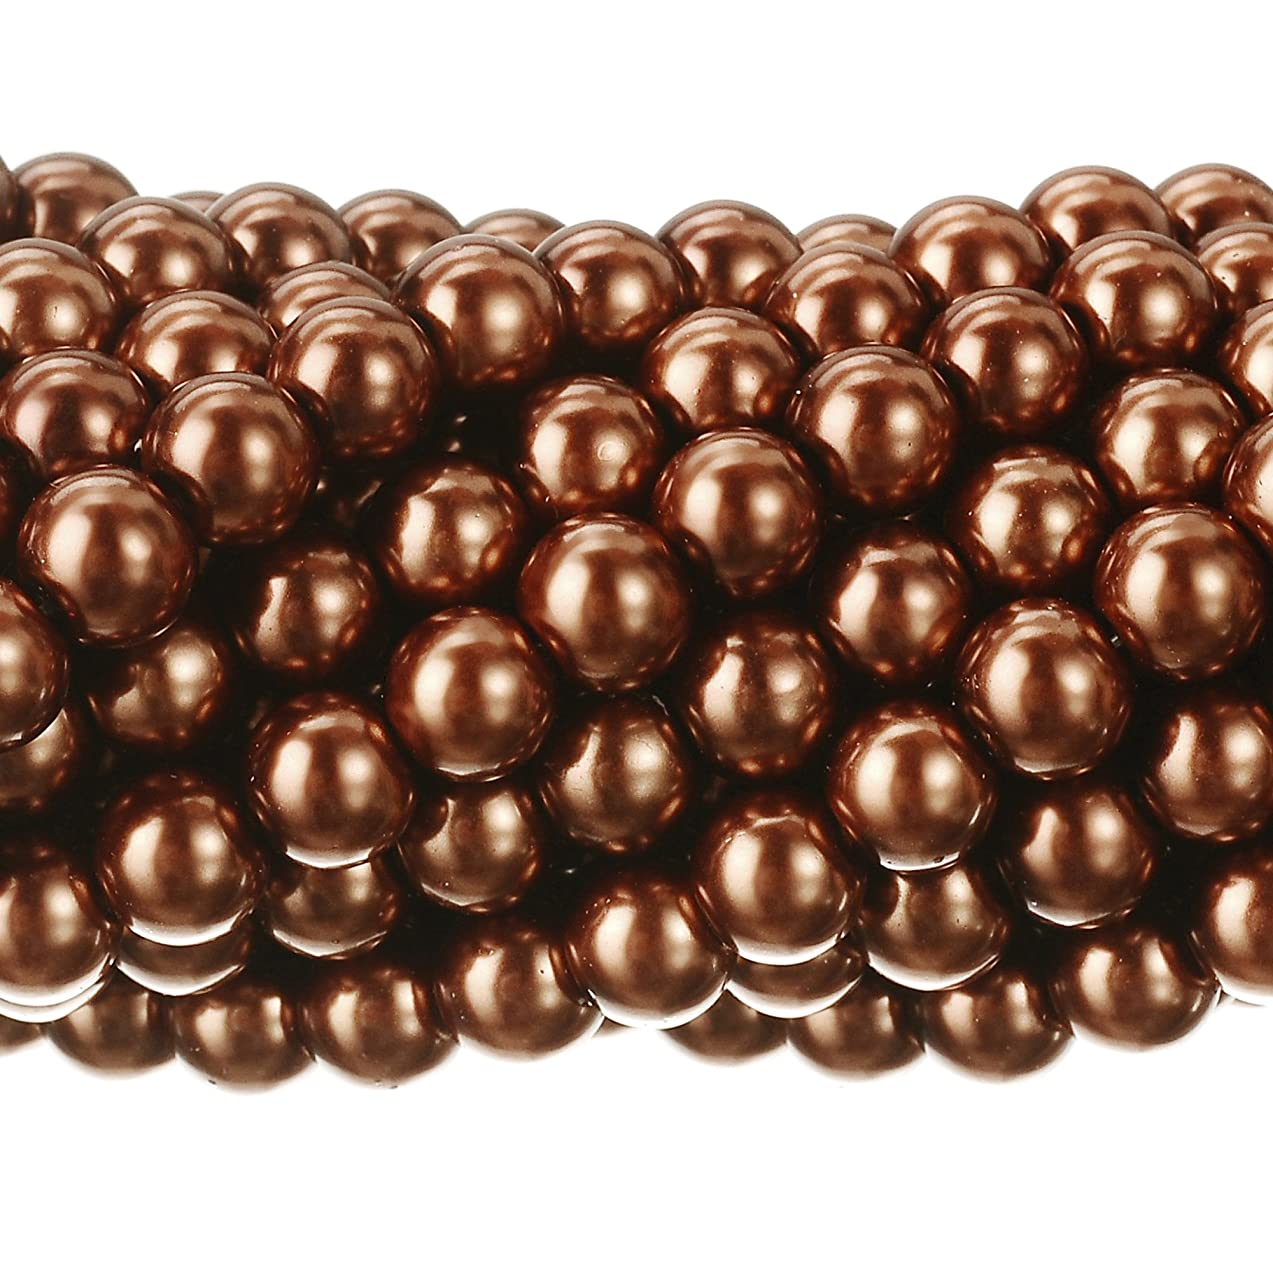 RUBYCA 200Pcs Czech Tiny Satin Luster Glass Pearl Round Beads DIY Jewelry Making 6mm Copper Brown